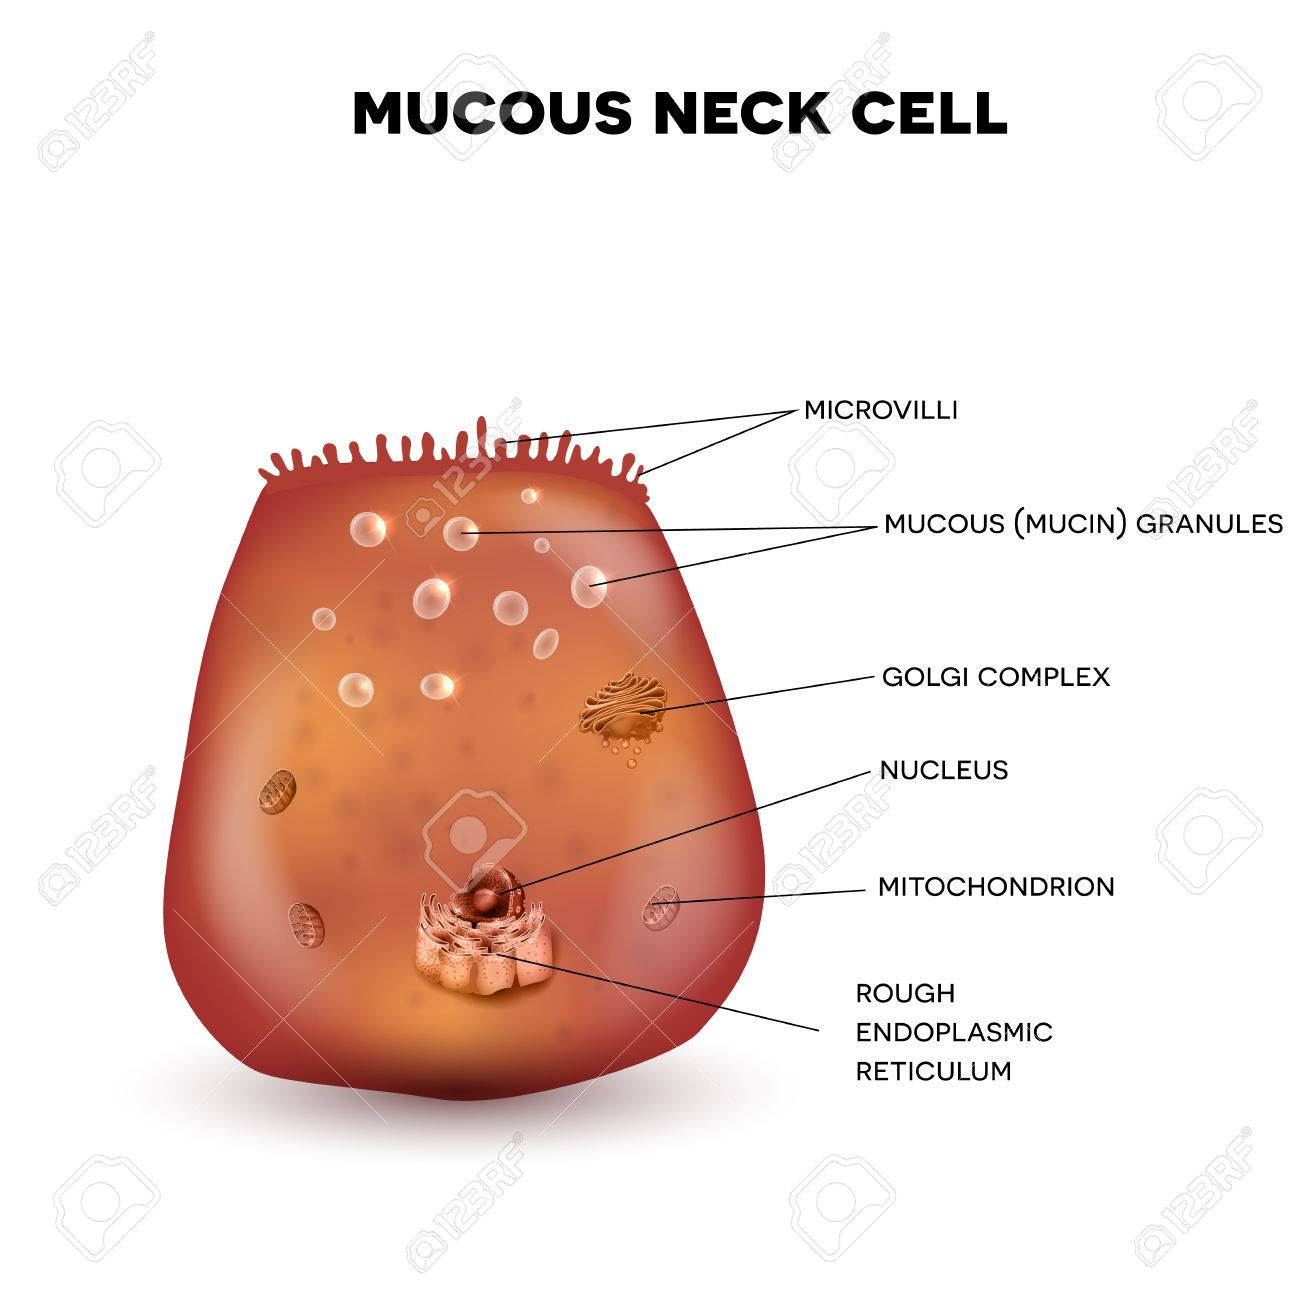 Mucous neck cell of the stomach wall beautiful colorful drawing mucous neck cell of the stomach wall beautiful colorful drawing on a white background stock ccuart Gallery